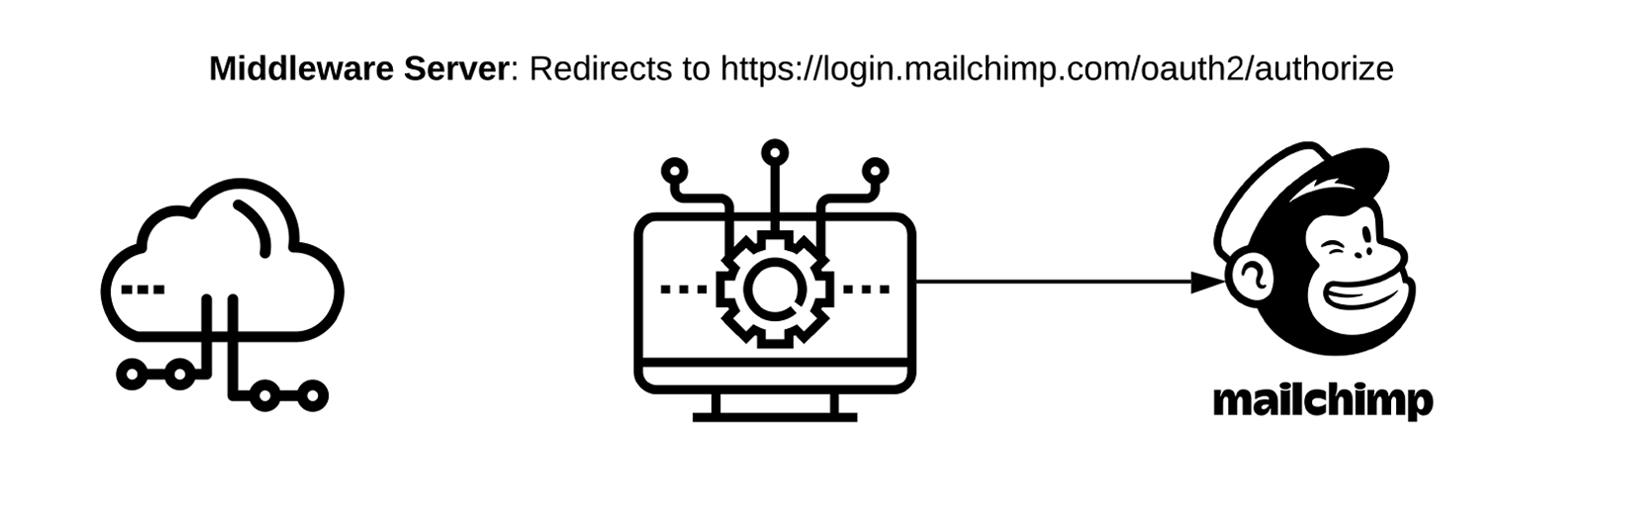 Middleware Server: Redirects to https://login.mailchimp.com/oauth2/authorize